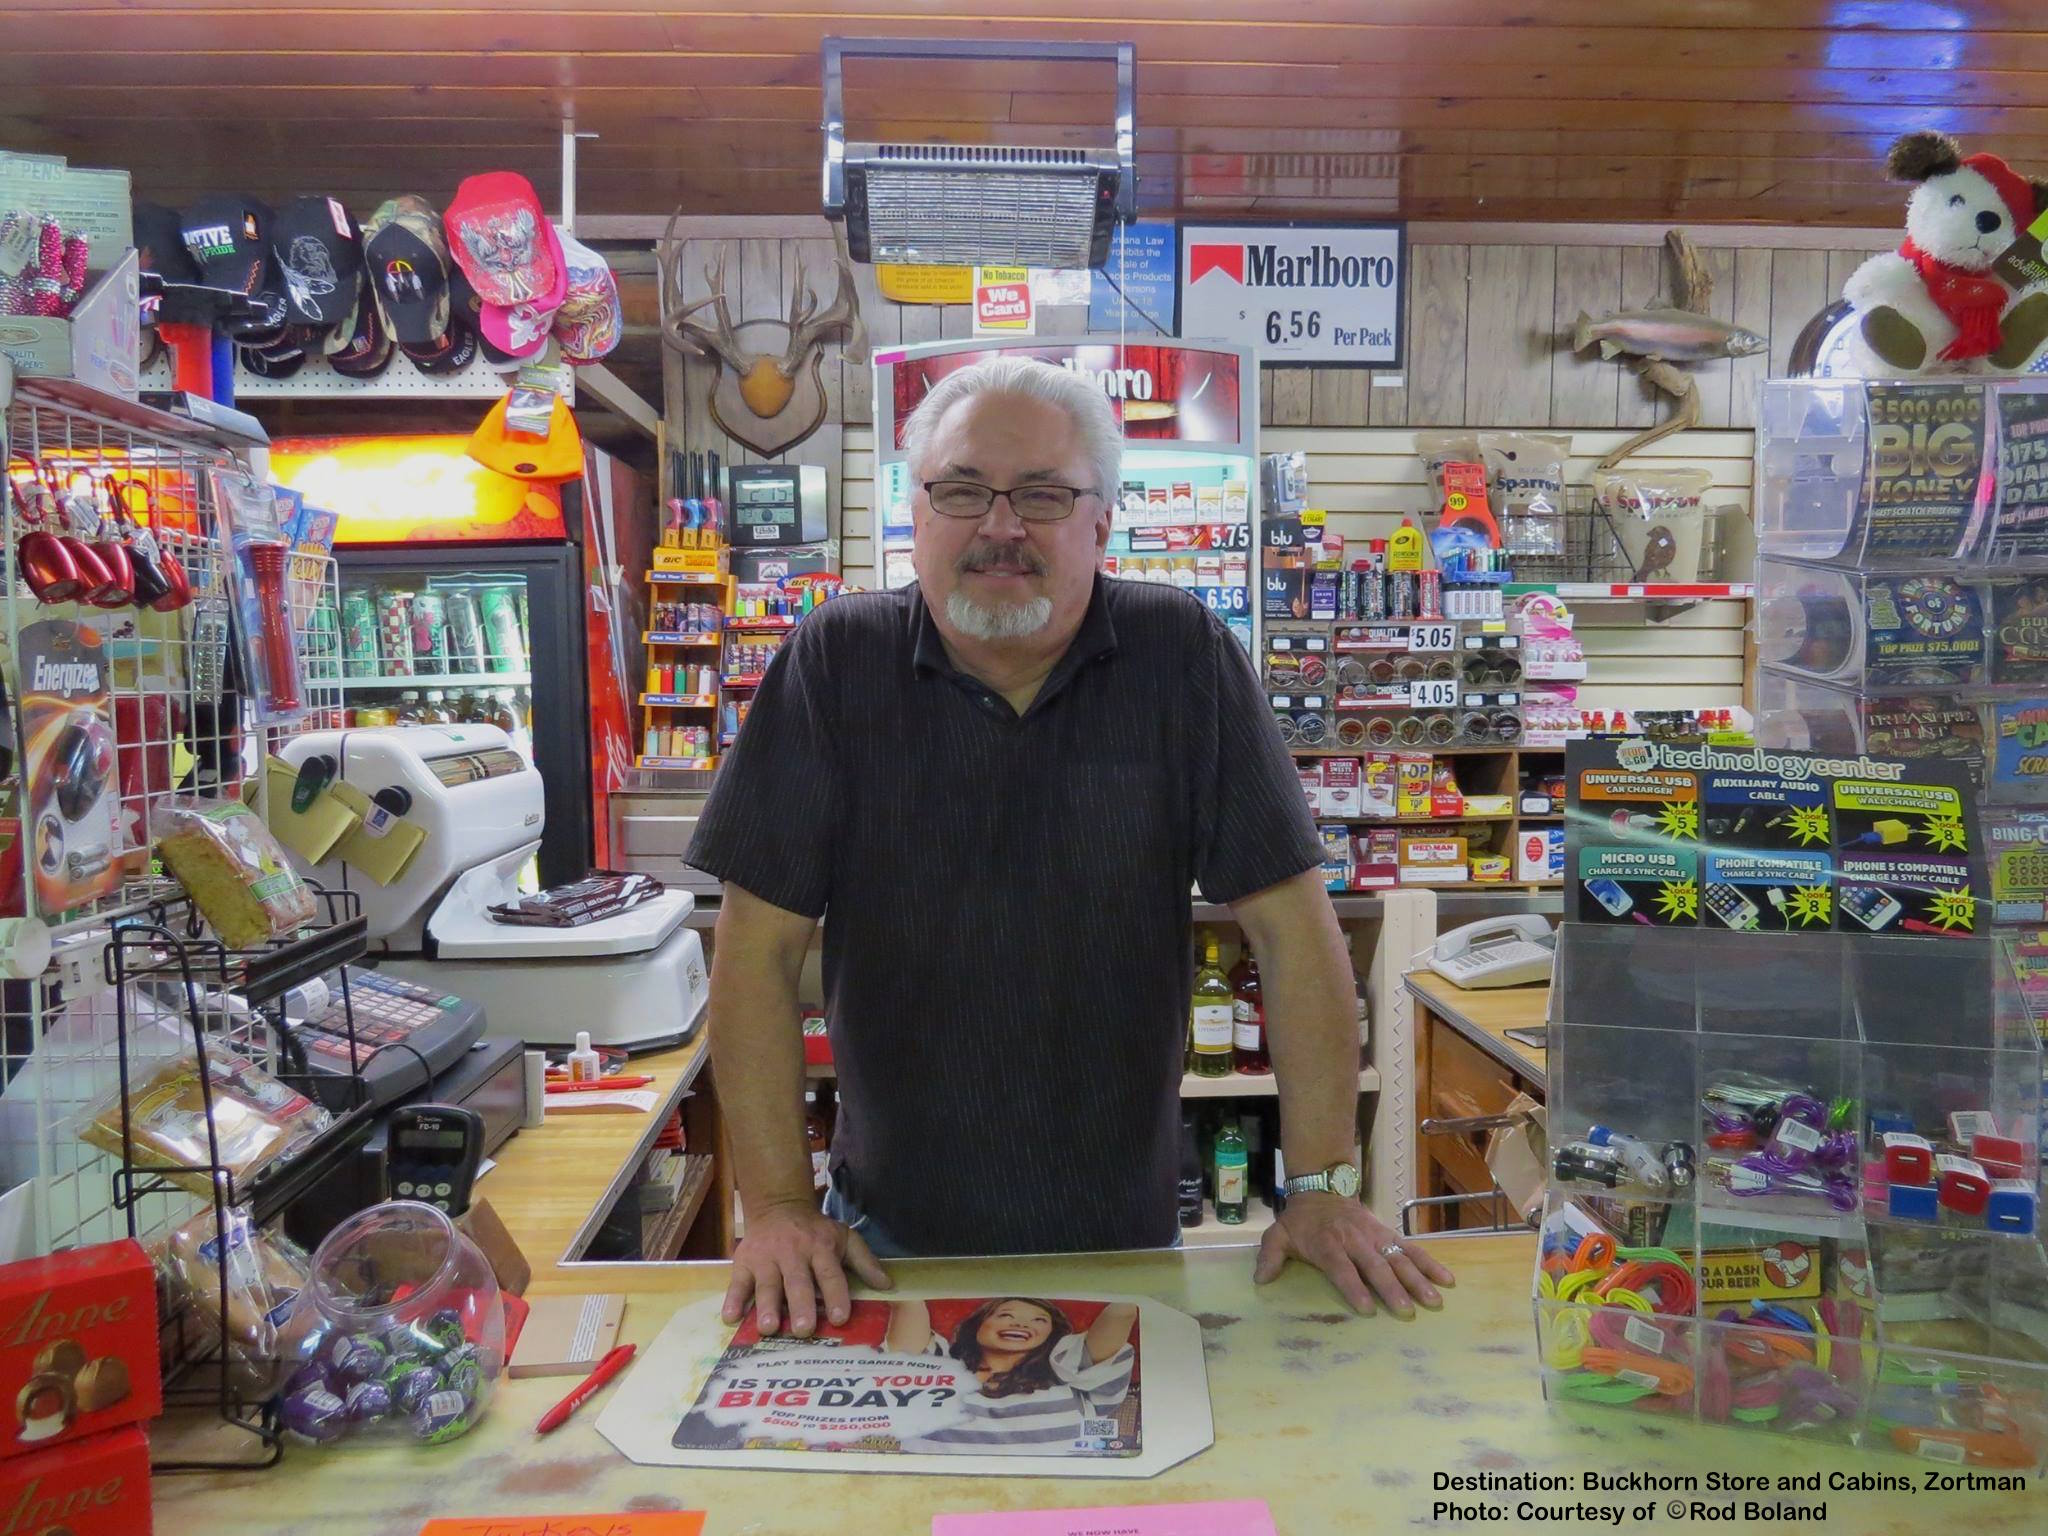 """ZORTMAN'S BUCKHORN STORE & CABINS HAS EVERYTHING FROM FRESH VEGGIES TO FUEL. SAY """"HI"""" TO OWNER ROD, FOR US! IMAGE: COURTESY OF ©ROD BOLAND."""